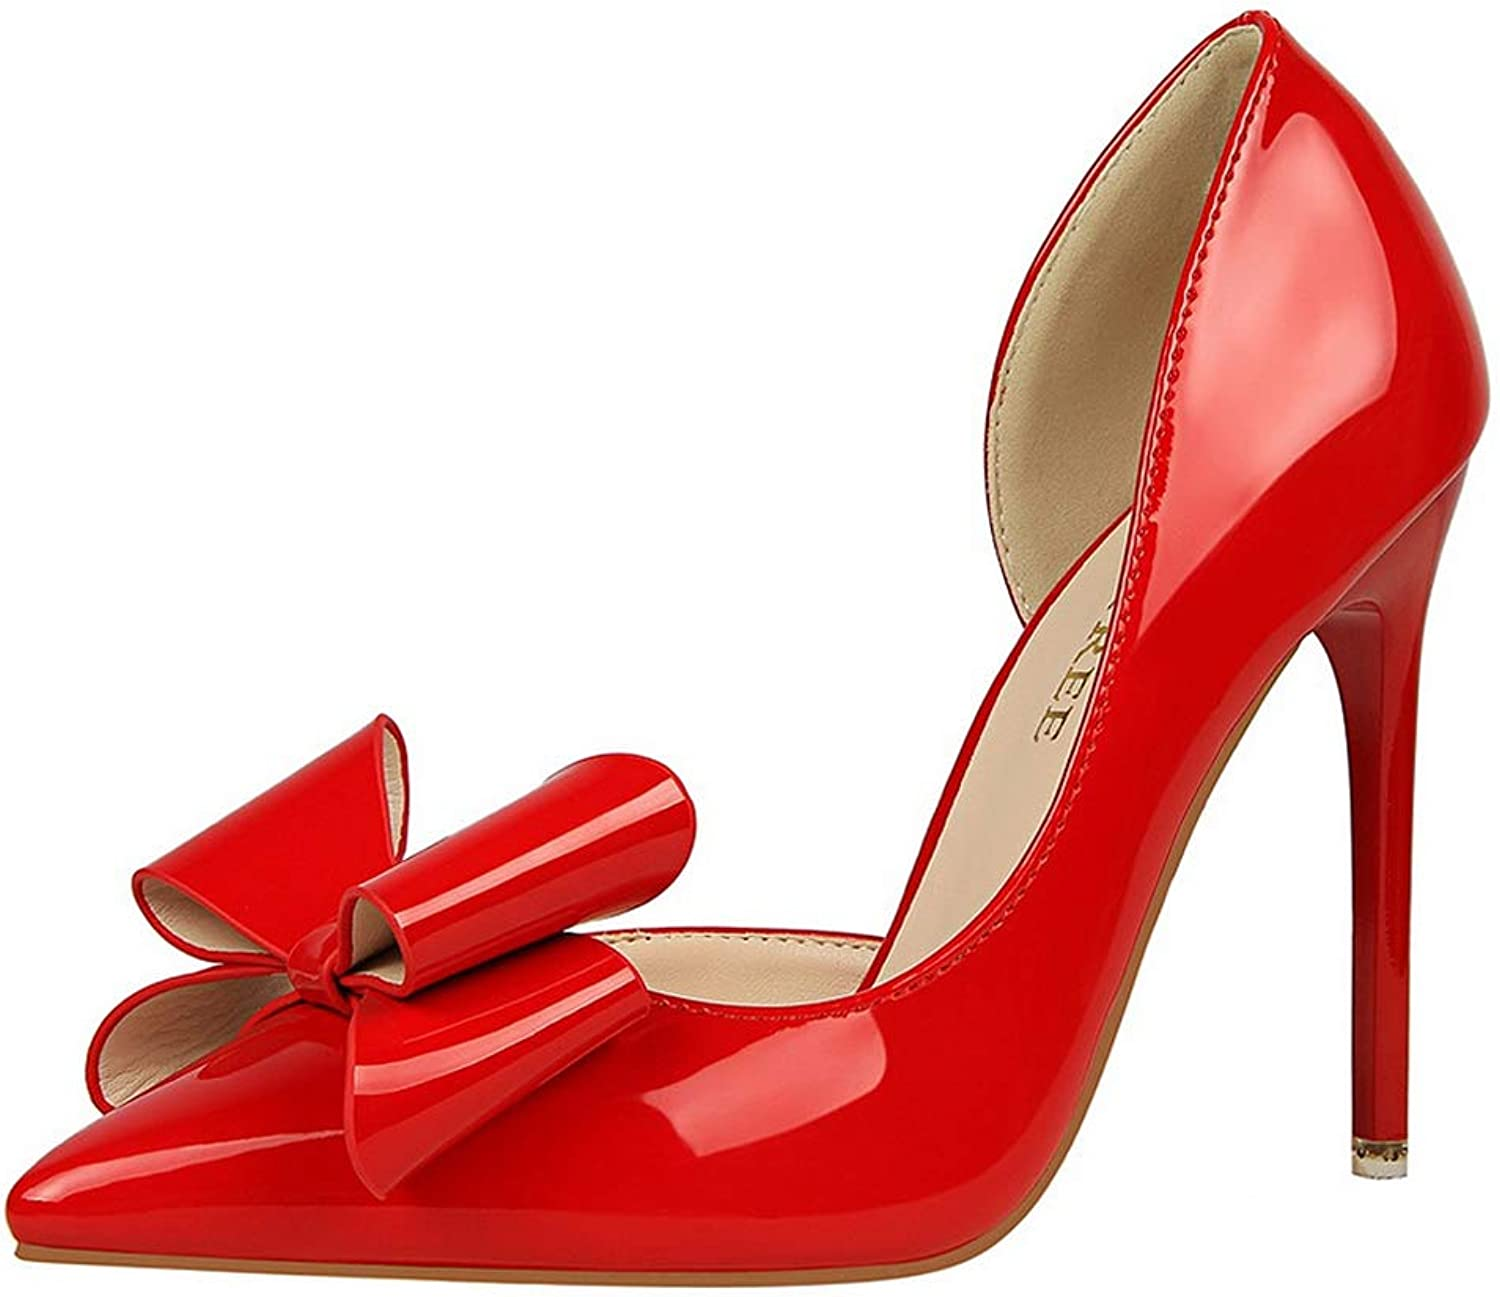 Sam Carle Women Pumps, Patent Leather Bowkont Side Hollow High Thin Heel Pointed Toe shoes